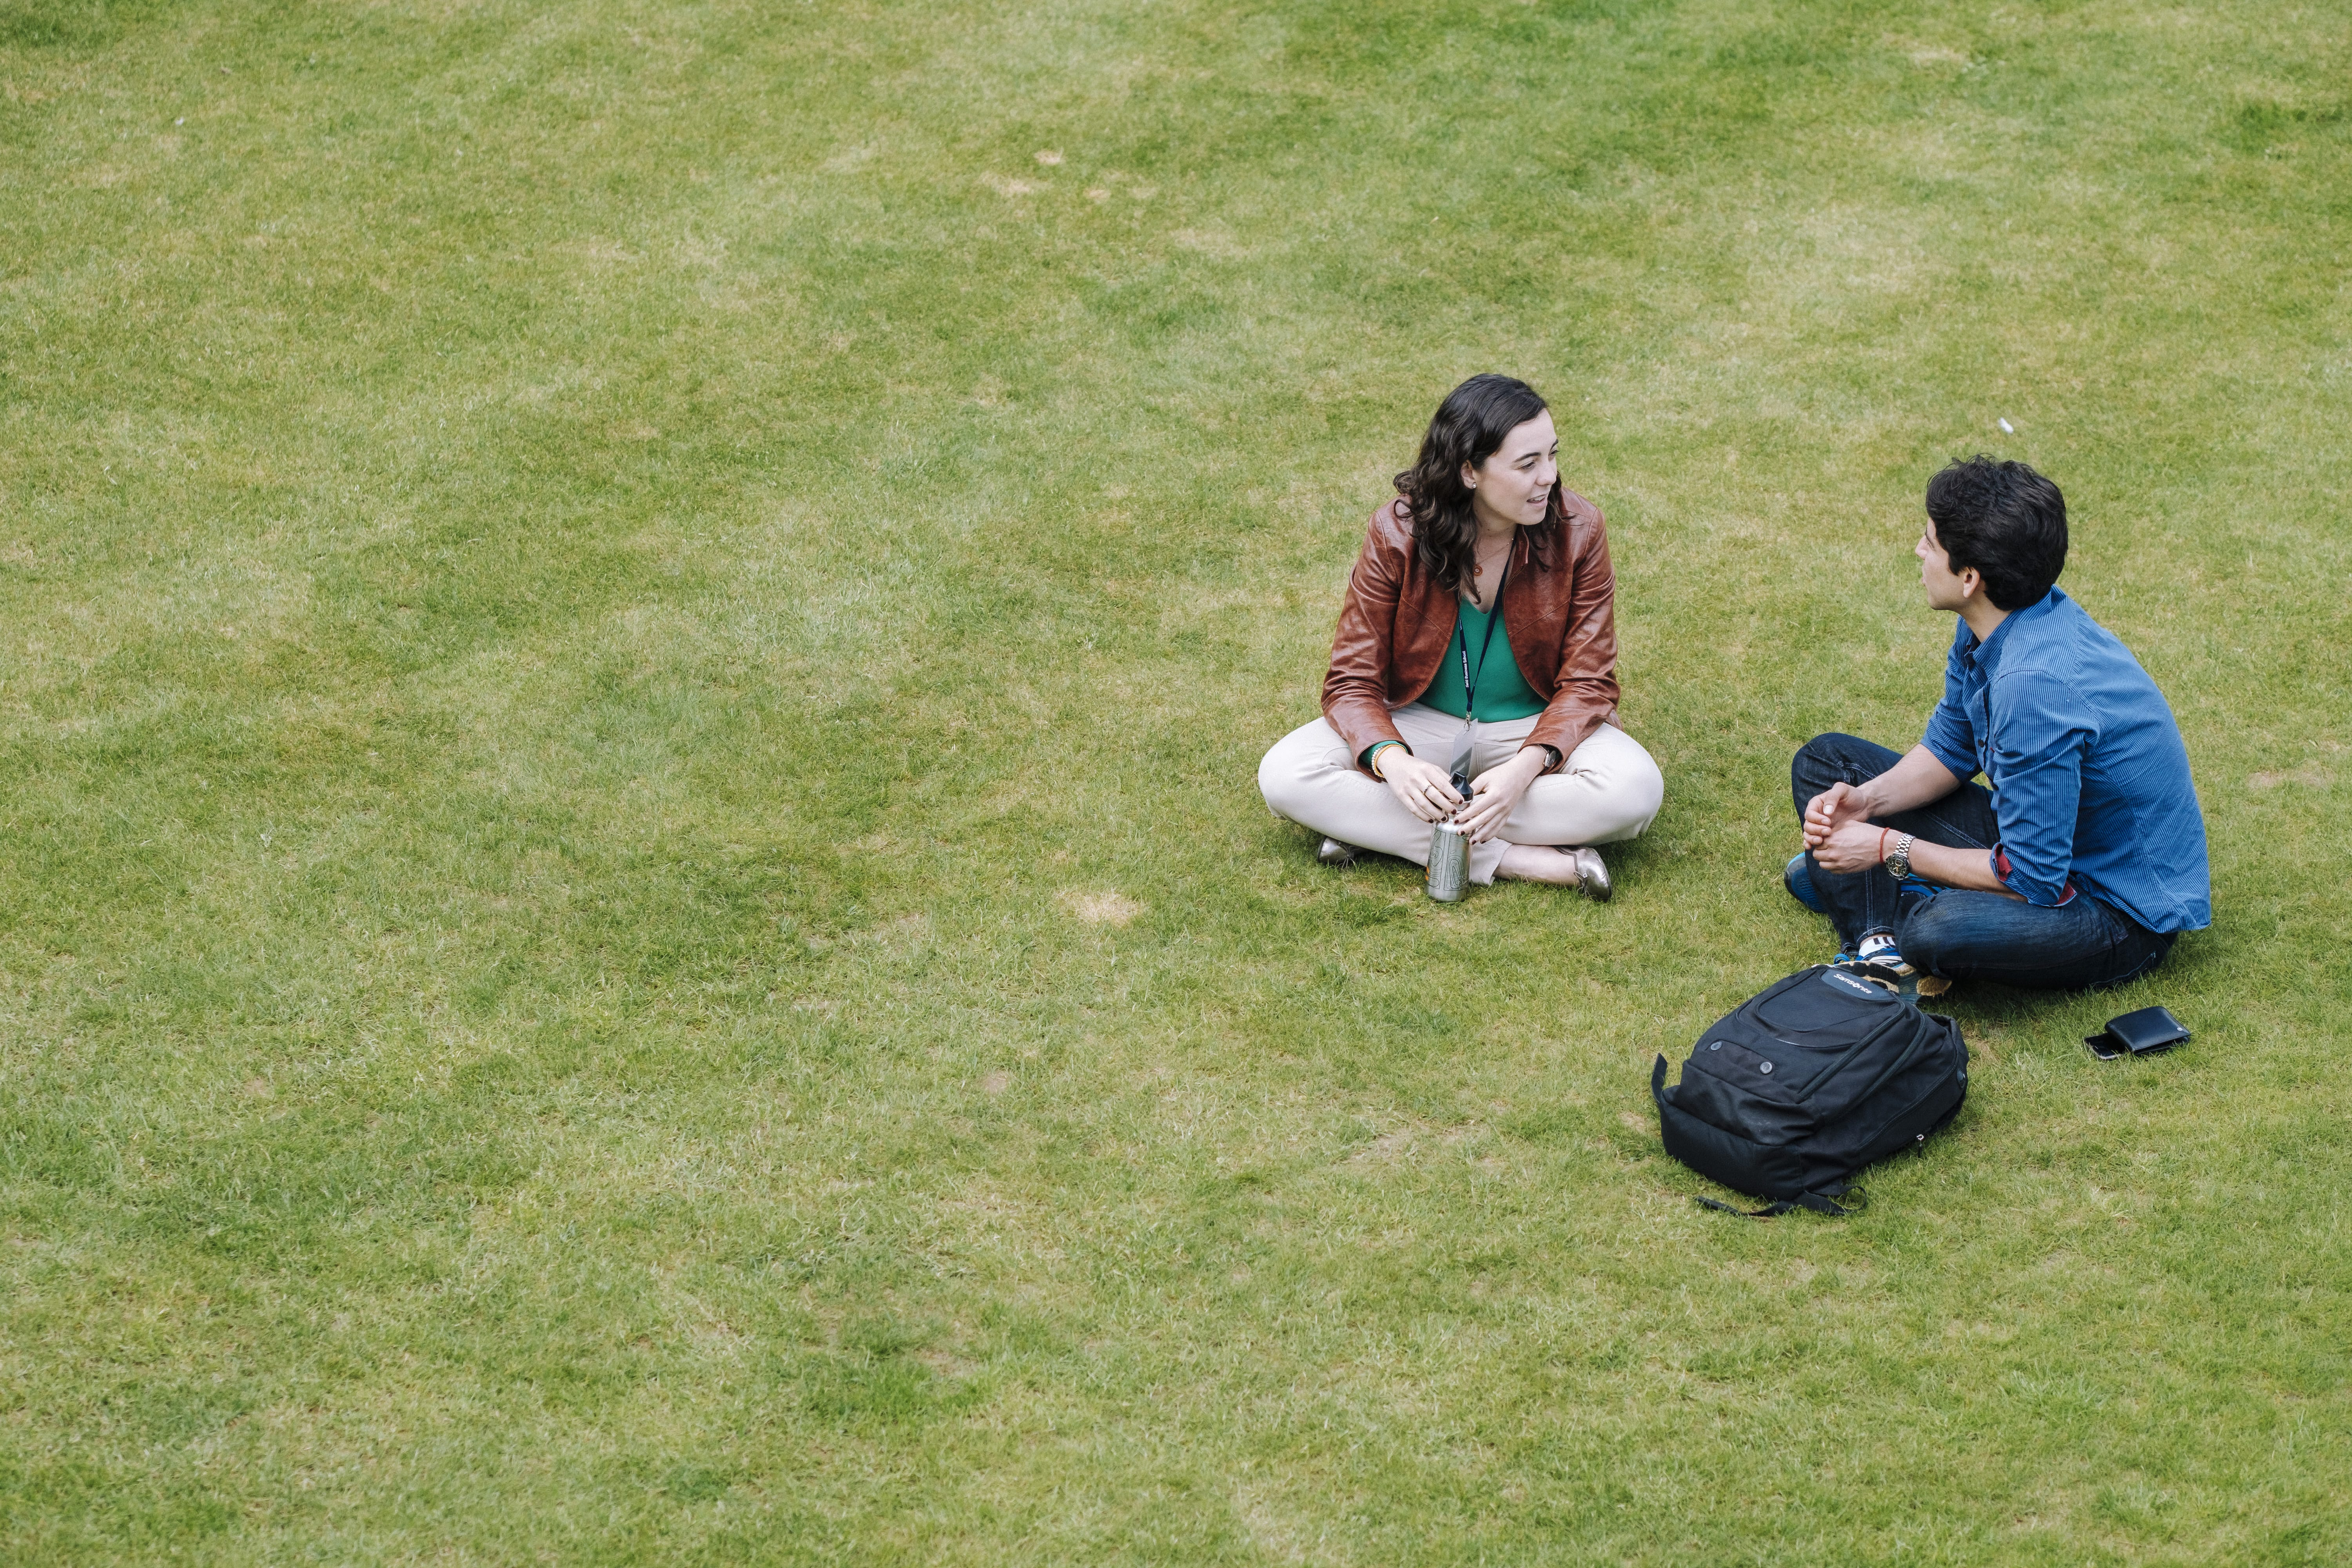 Students relaxing on grass